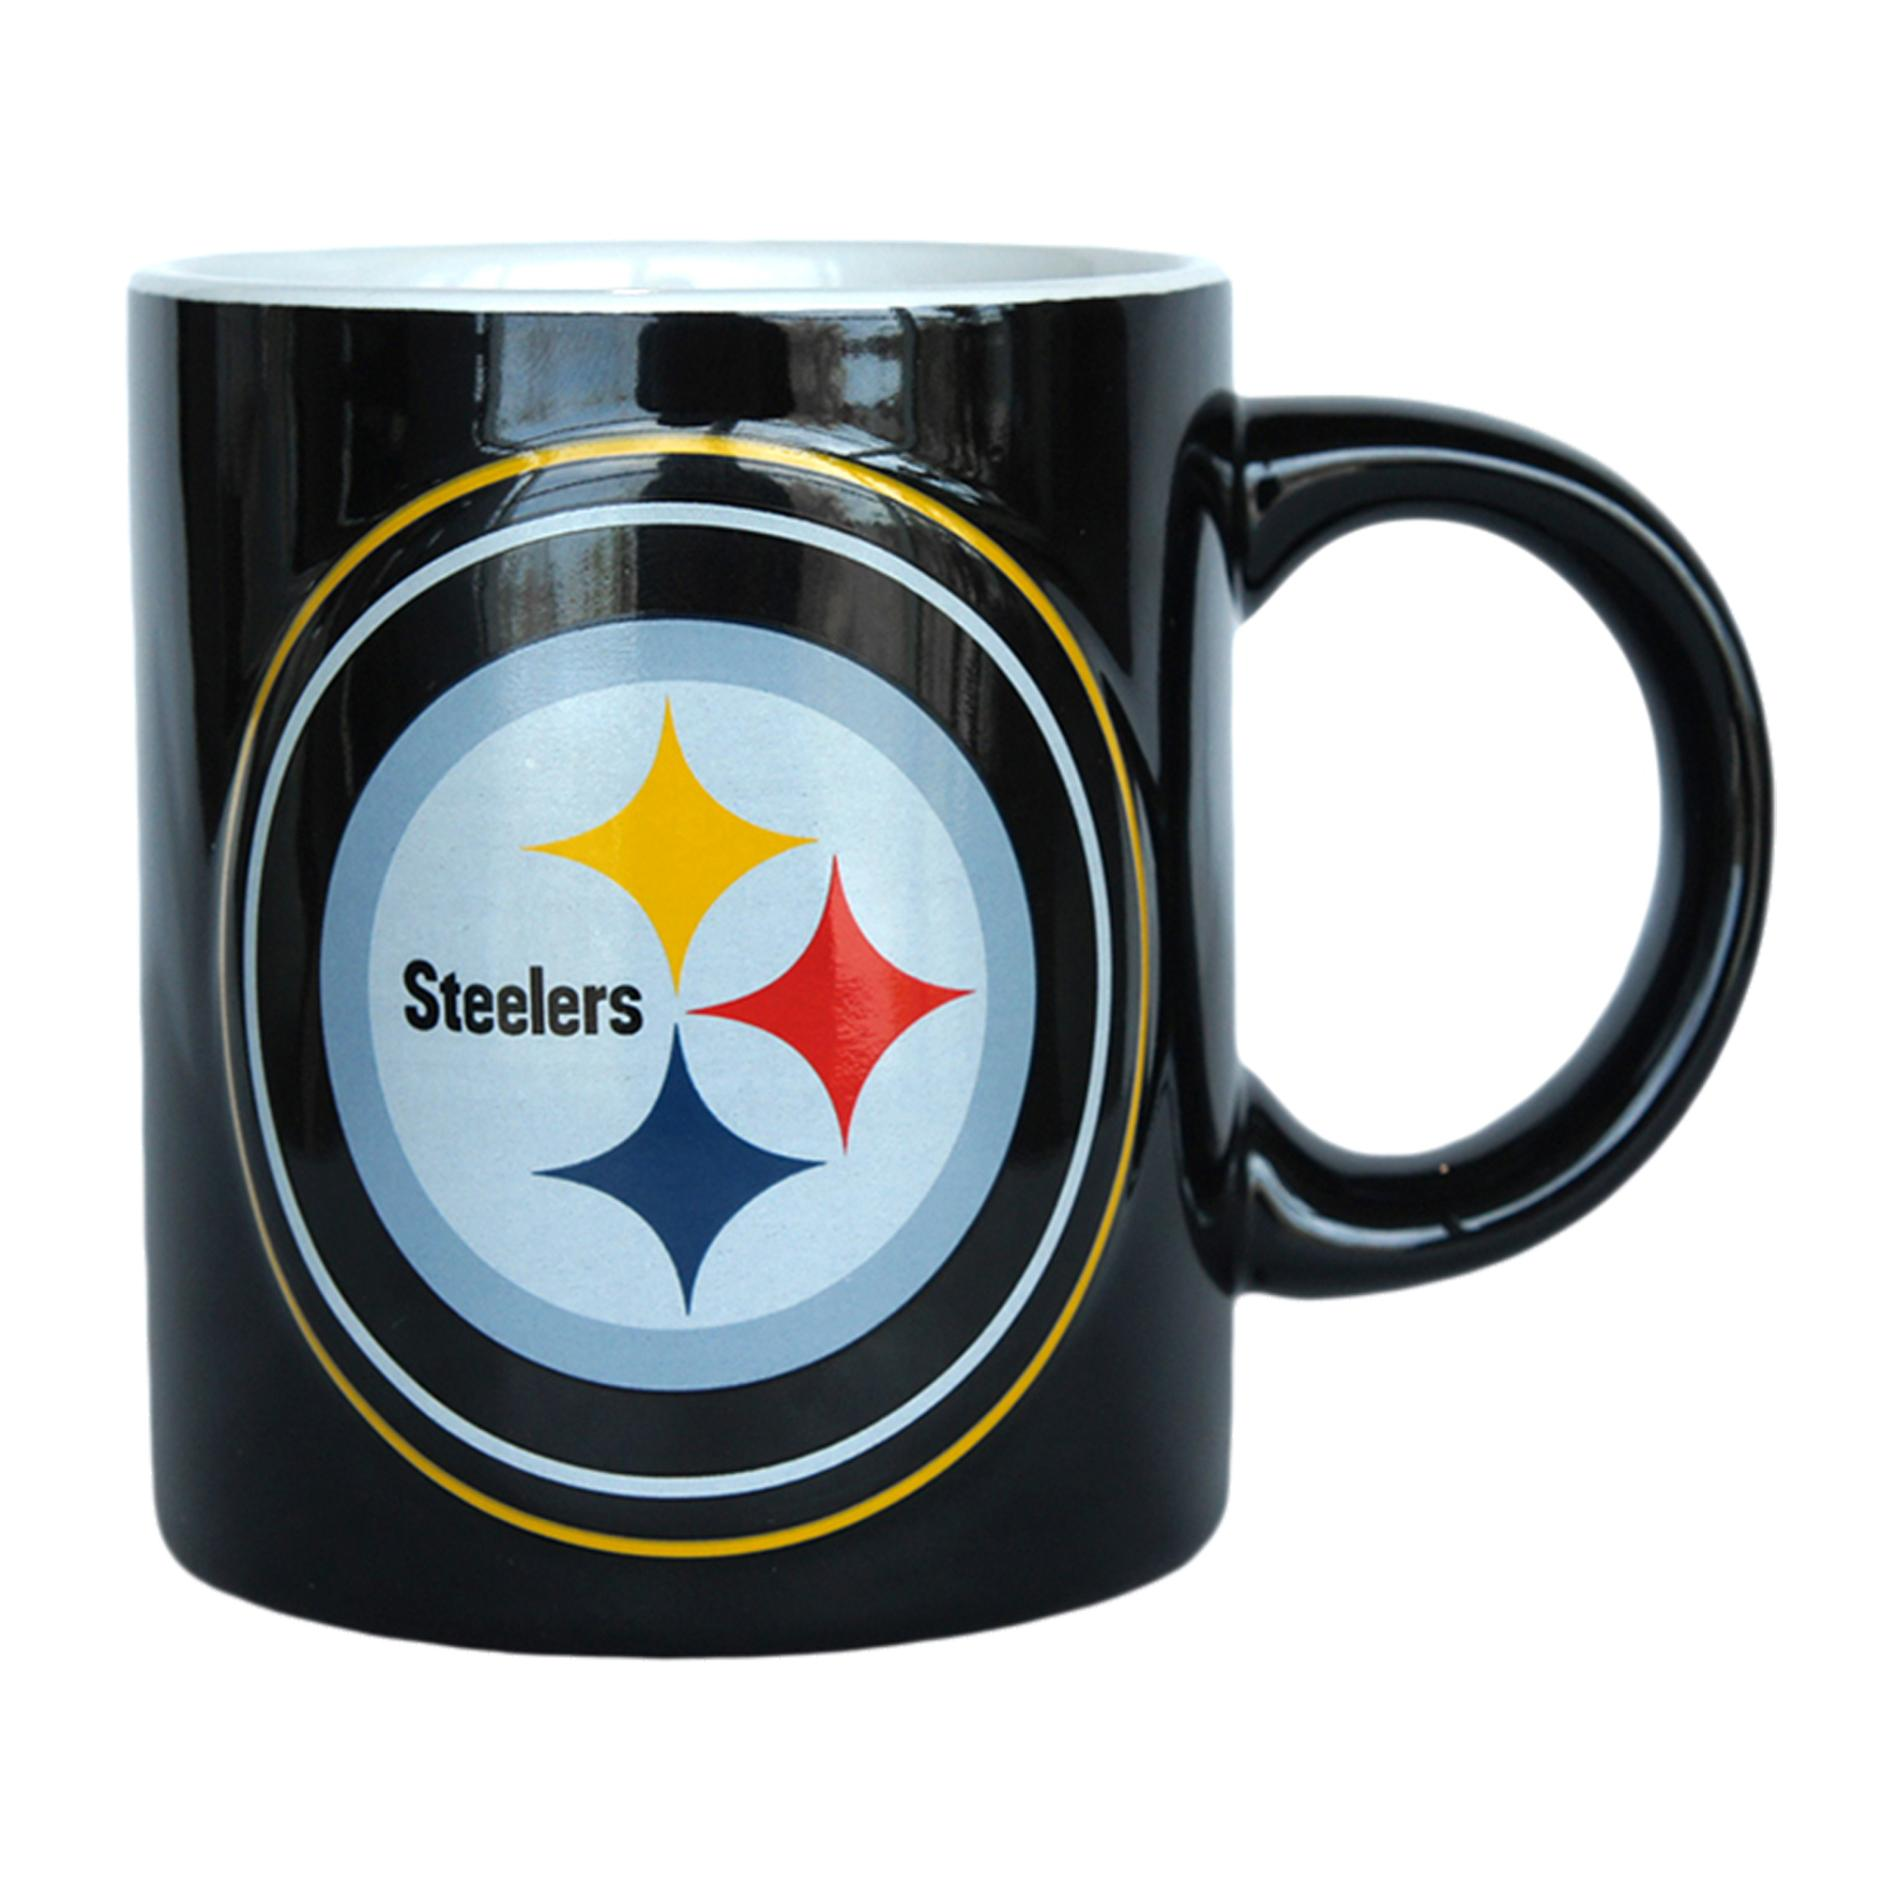 Pittsburgh Steelers Coffee Mug - 14oz Sculpted Warm Up PartNumber: 046W009310093001P